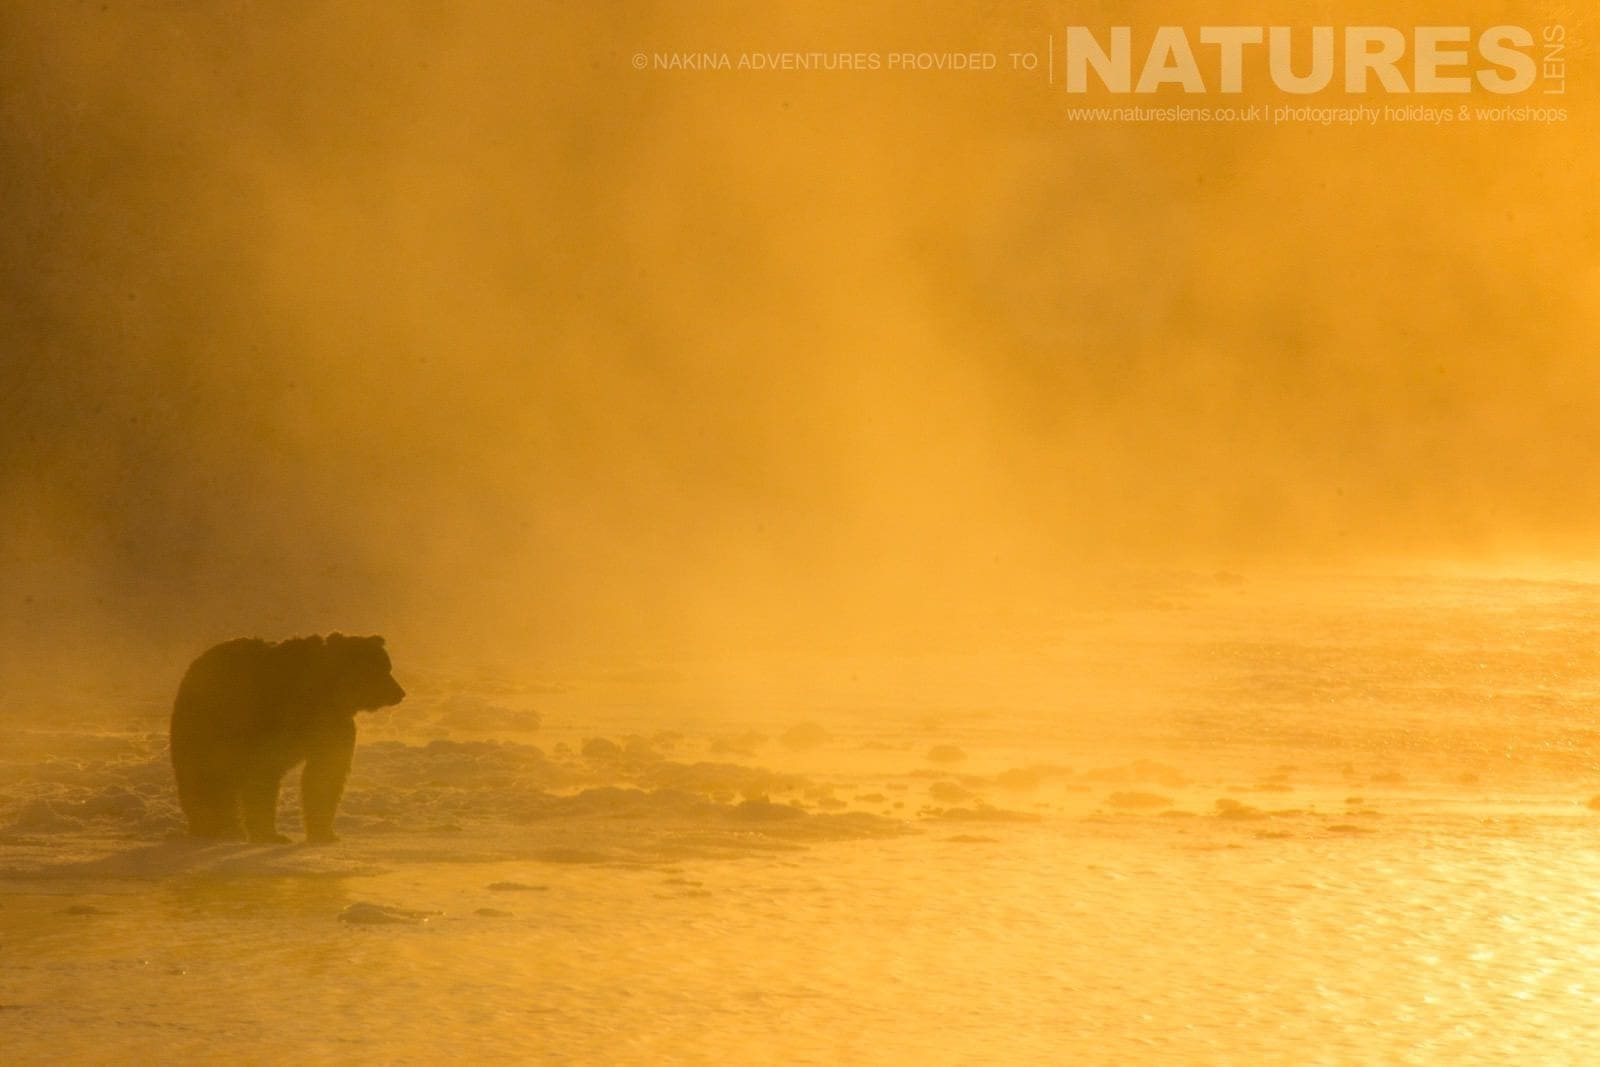 An Atmospheric Image Of Fishing Branch River With A Grizzly Bear Of The Yukon Typical Of The Kind Of Image That May Be Captured On The Ice Bears Of The Yukon Photographic Holiday